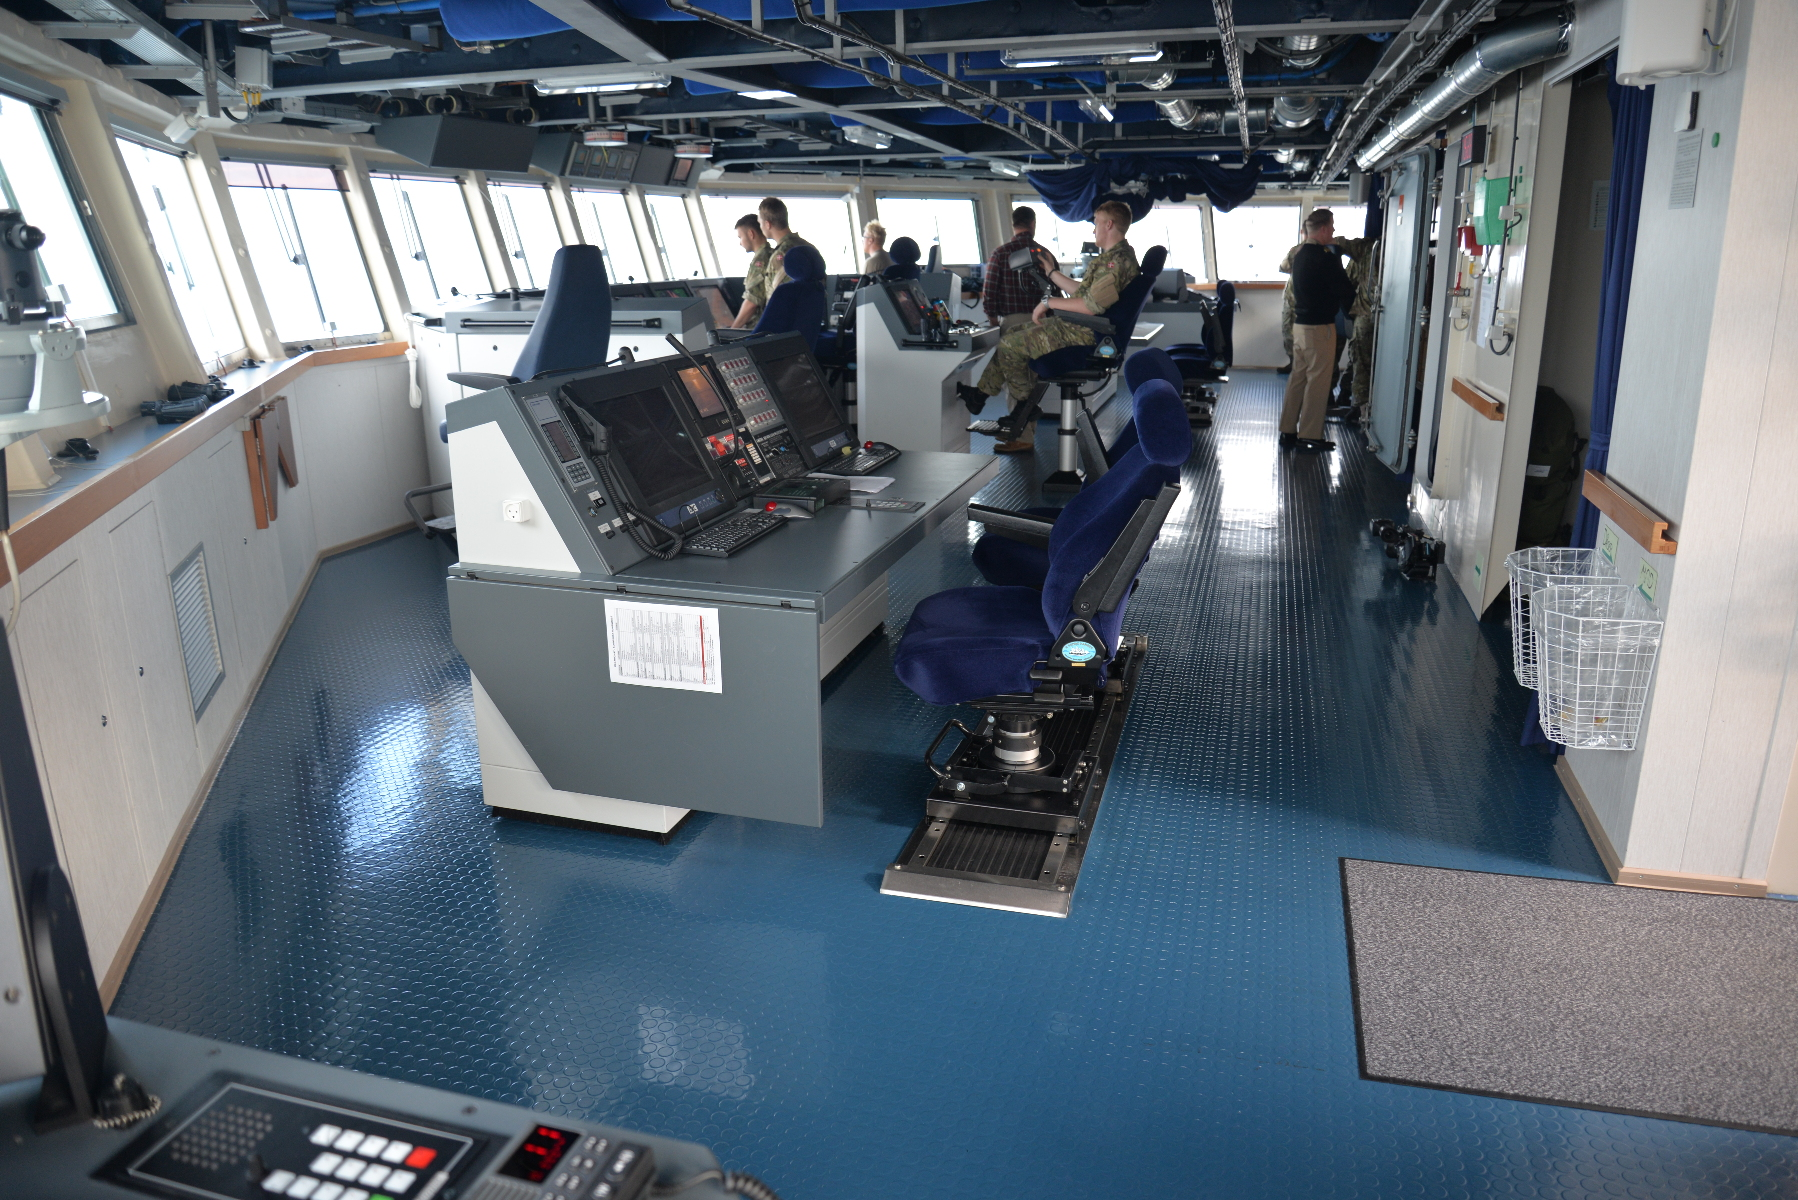 The spacious bridge spans the full width of the ship.